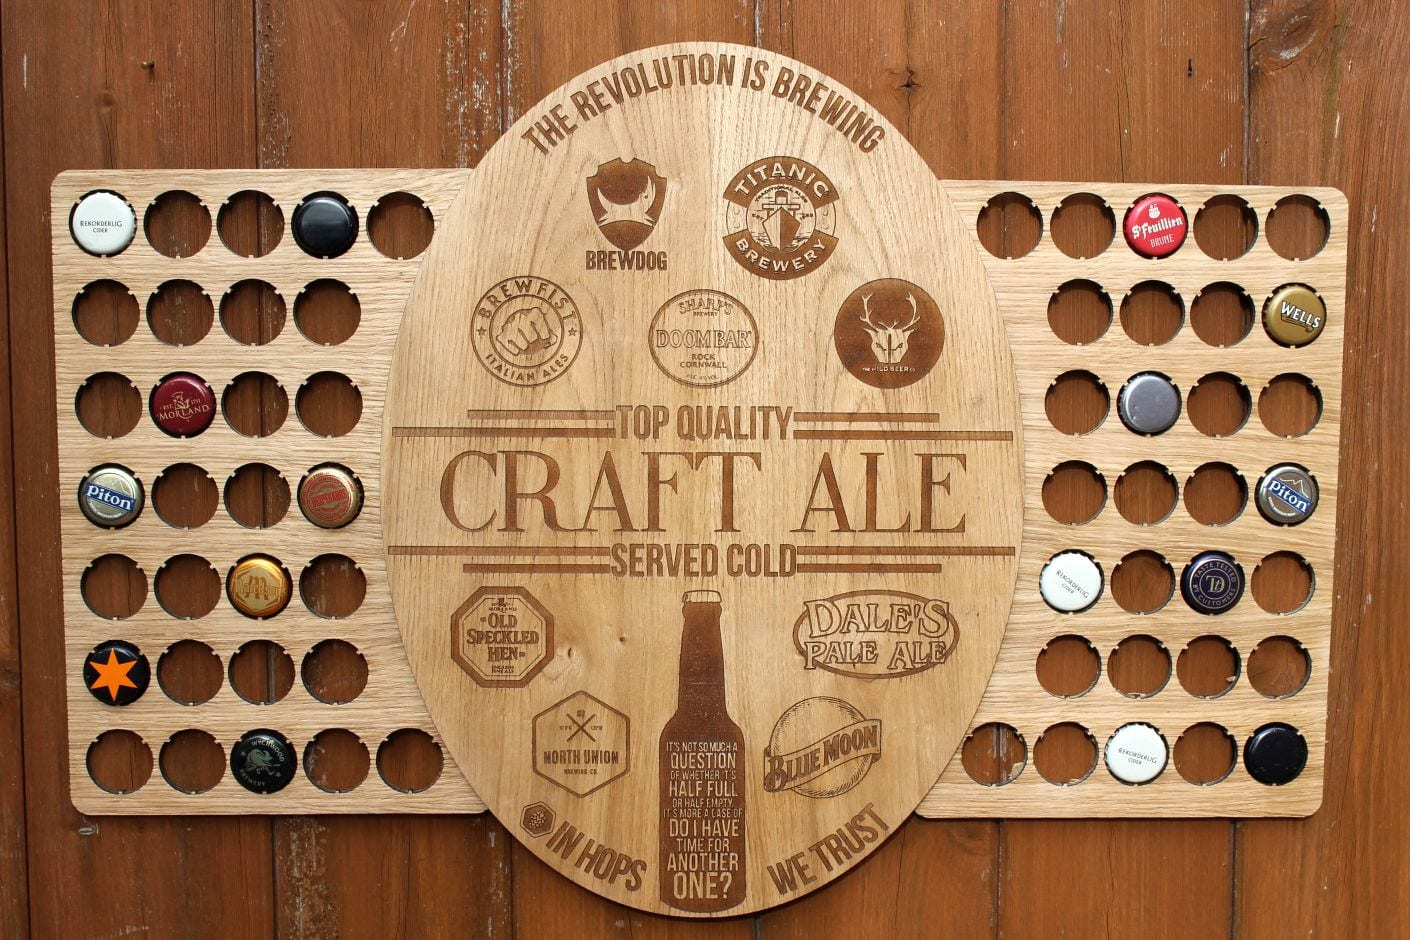 e8e3f1d5130 Home Words and Names Craft Ale Bottle Cap Collection Beer Cap Gift Art  Breweries Beer